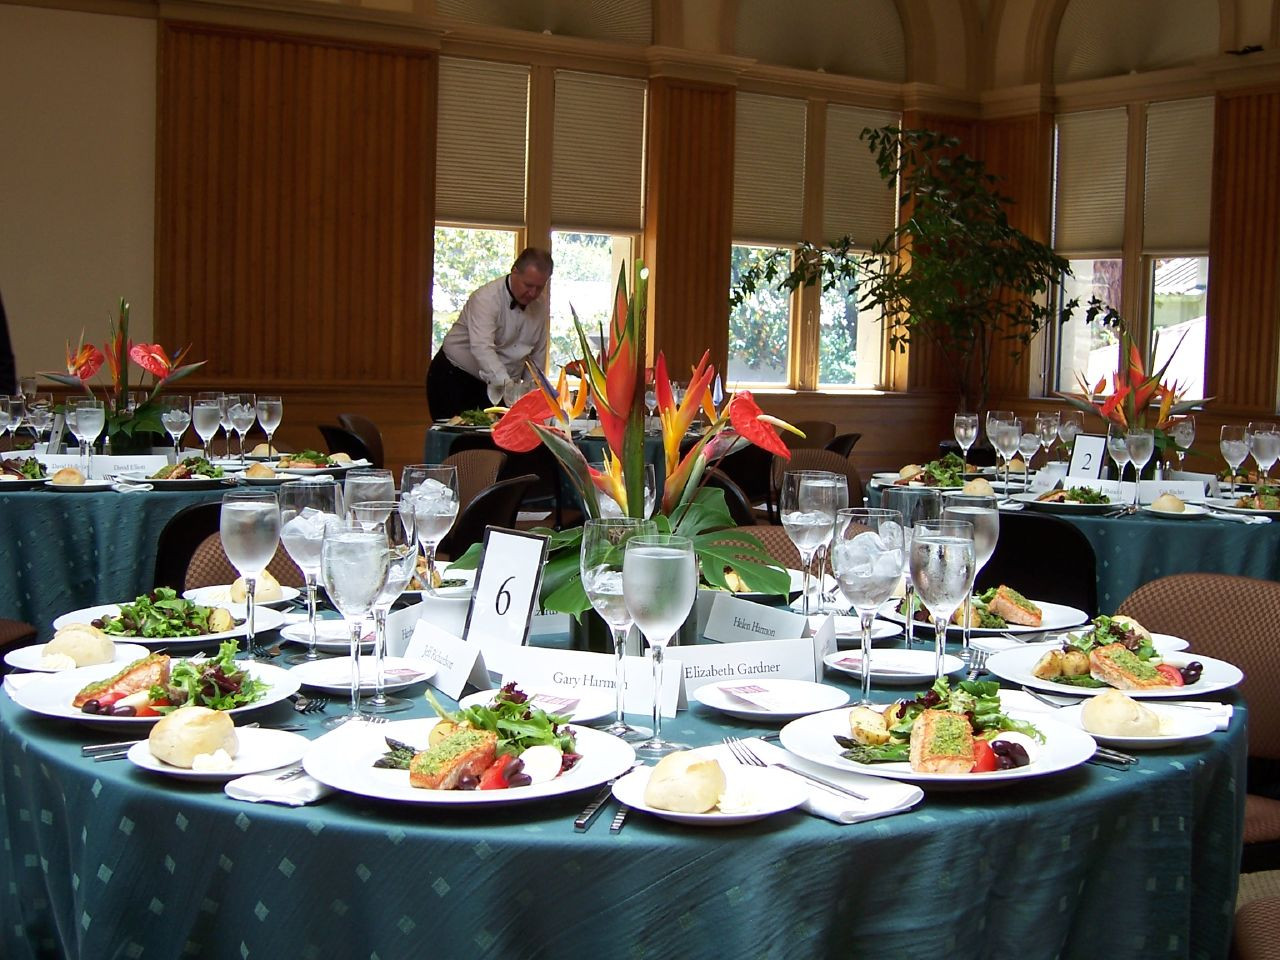 Best ideas about DIY Wedding Catering . Save or Pin Cost Saving Reception Ideas • DIY Weddings Magazine Now.